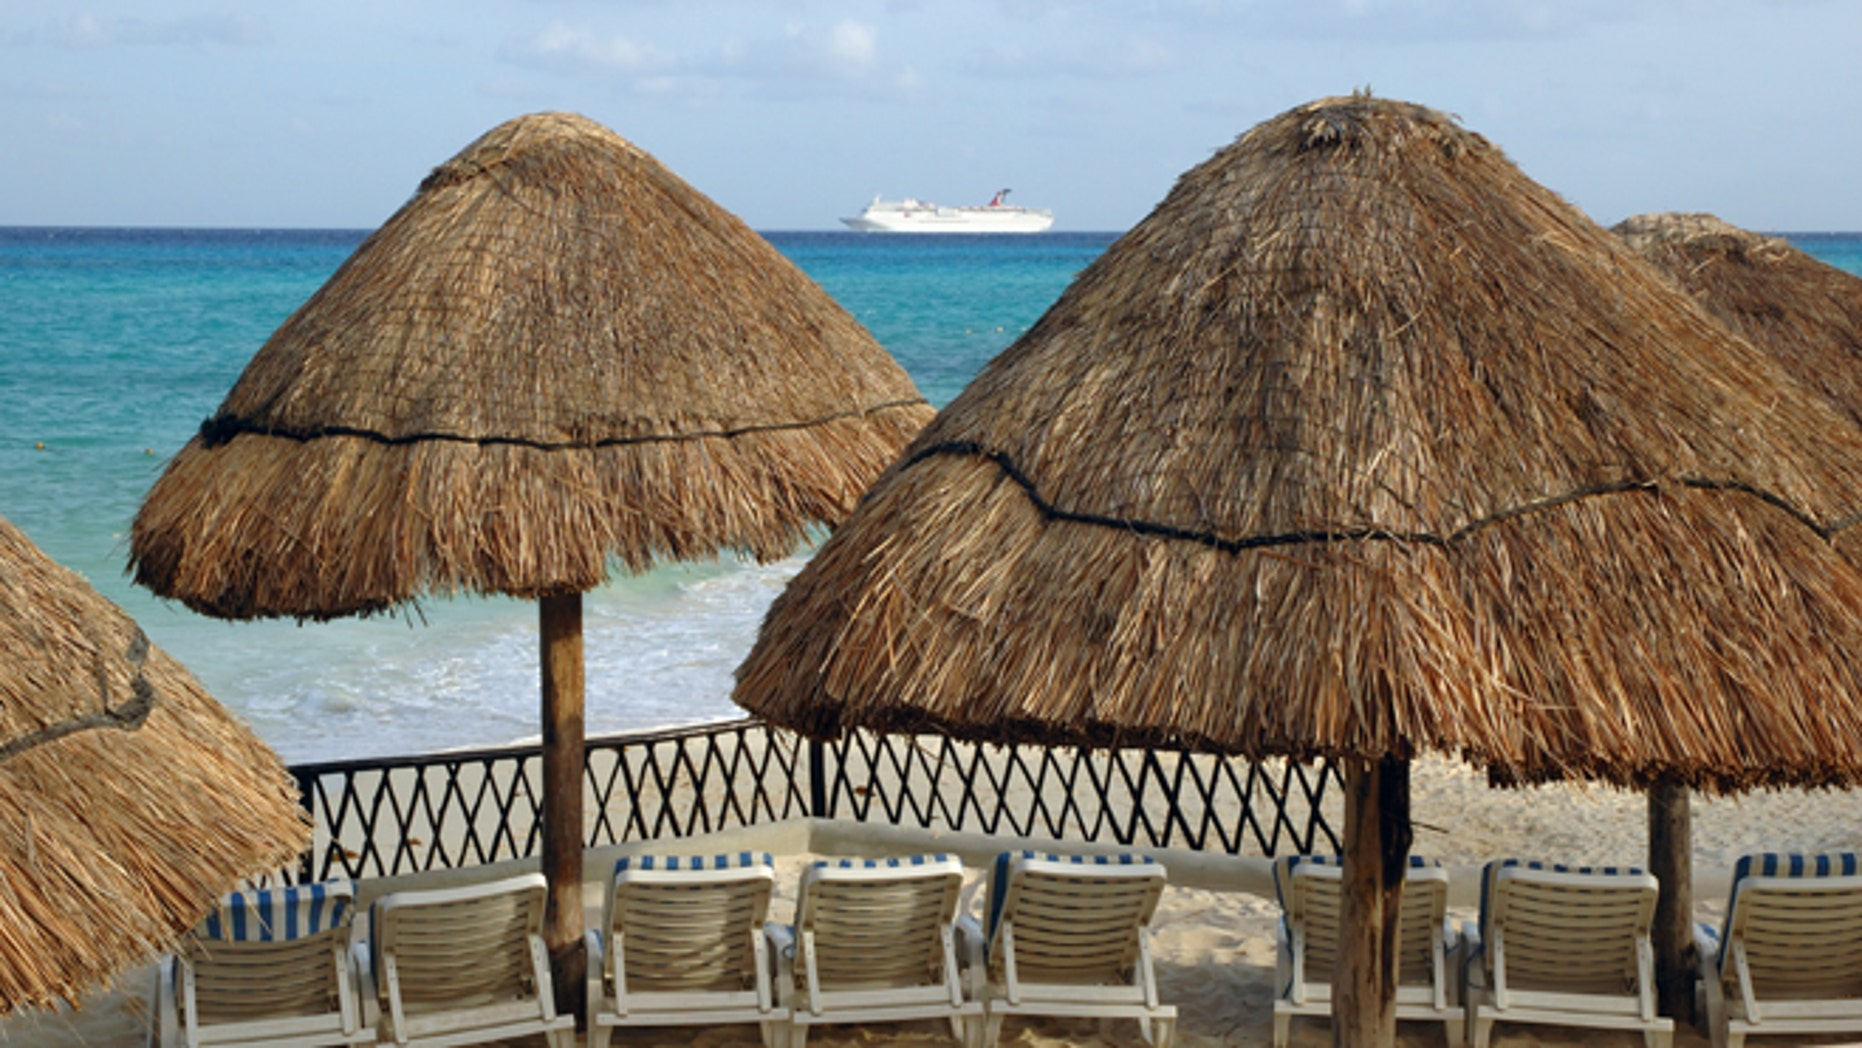 Lounge Chairs, Playa del Carmen, Mexico. (Photo by: Universal Images Group via Getty Images)